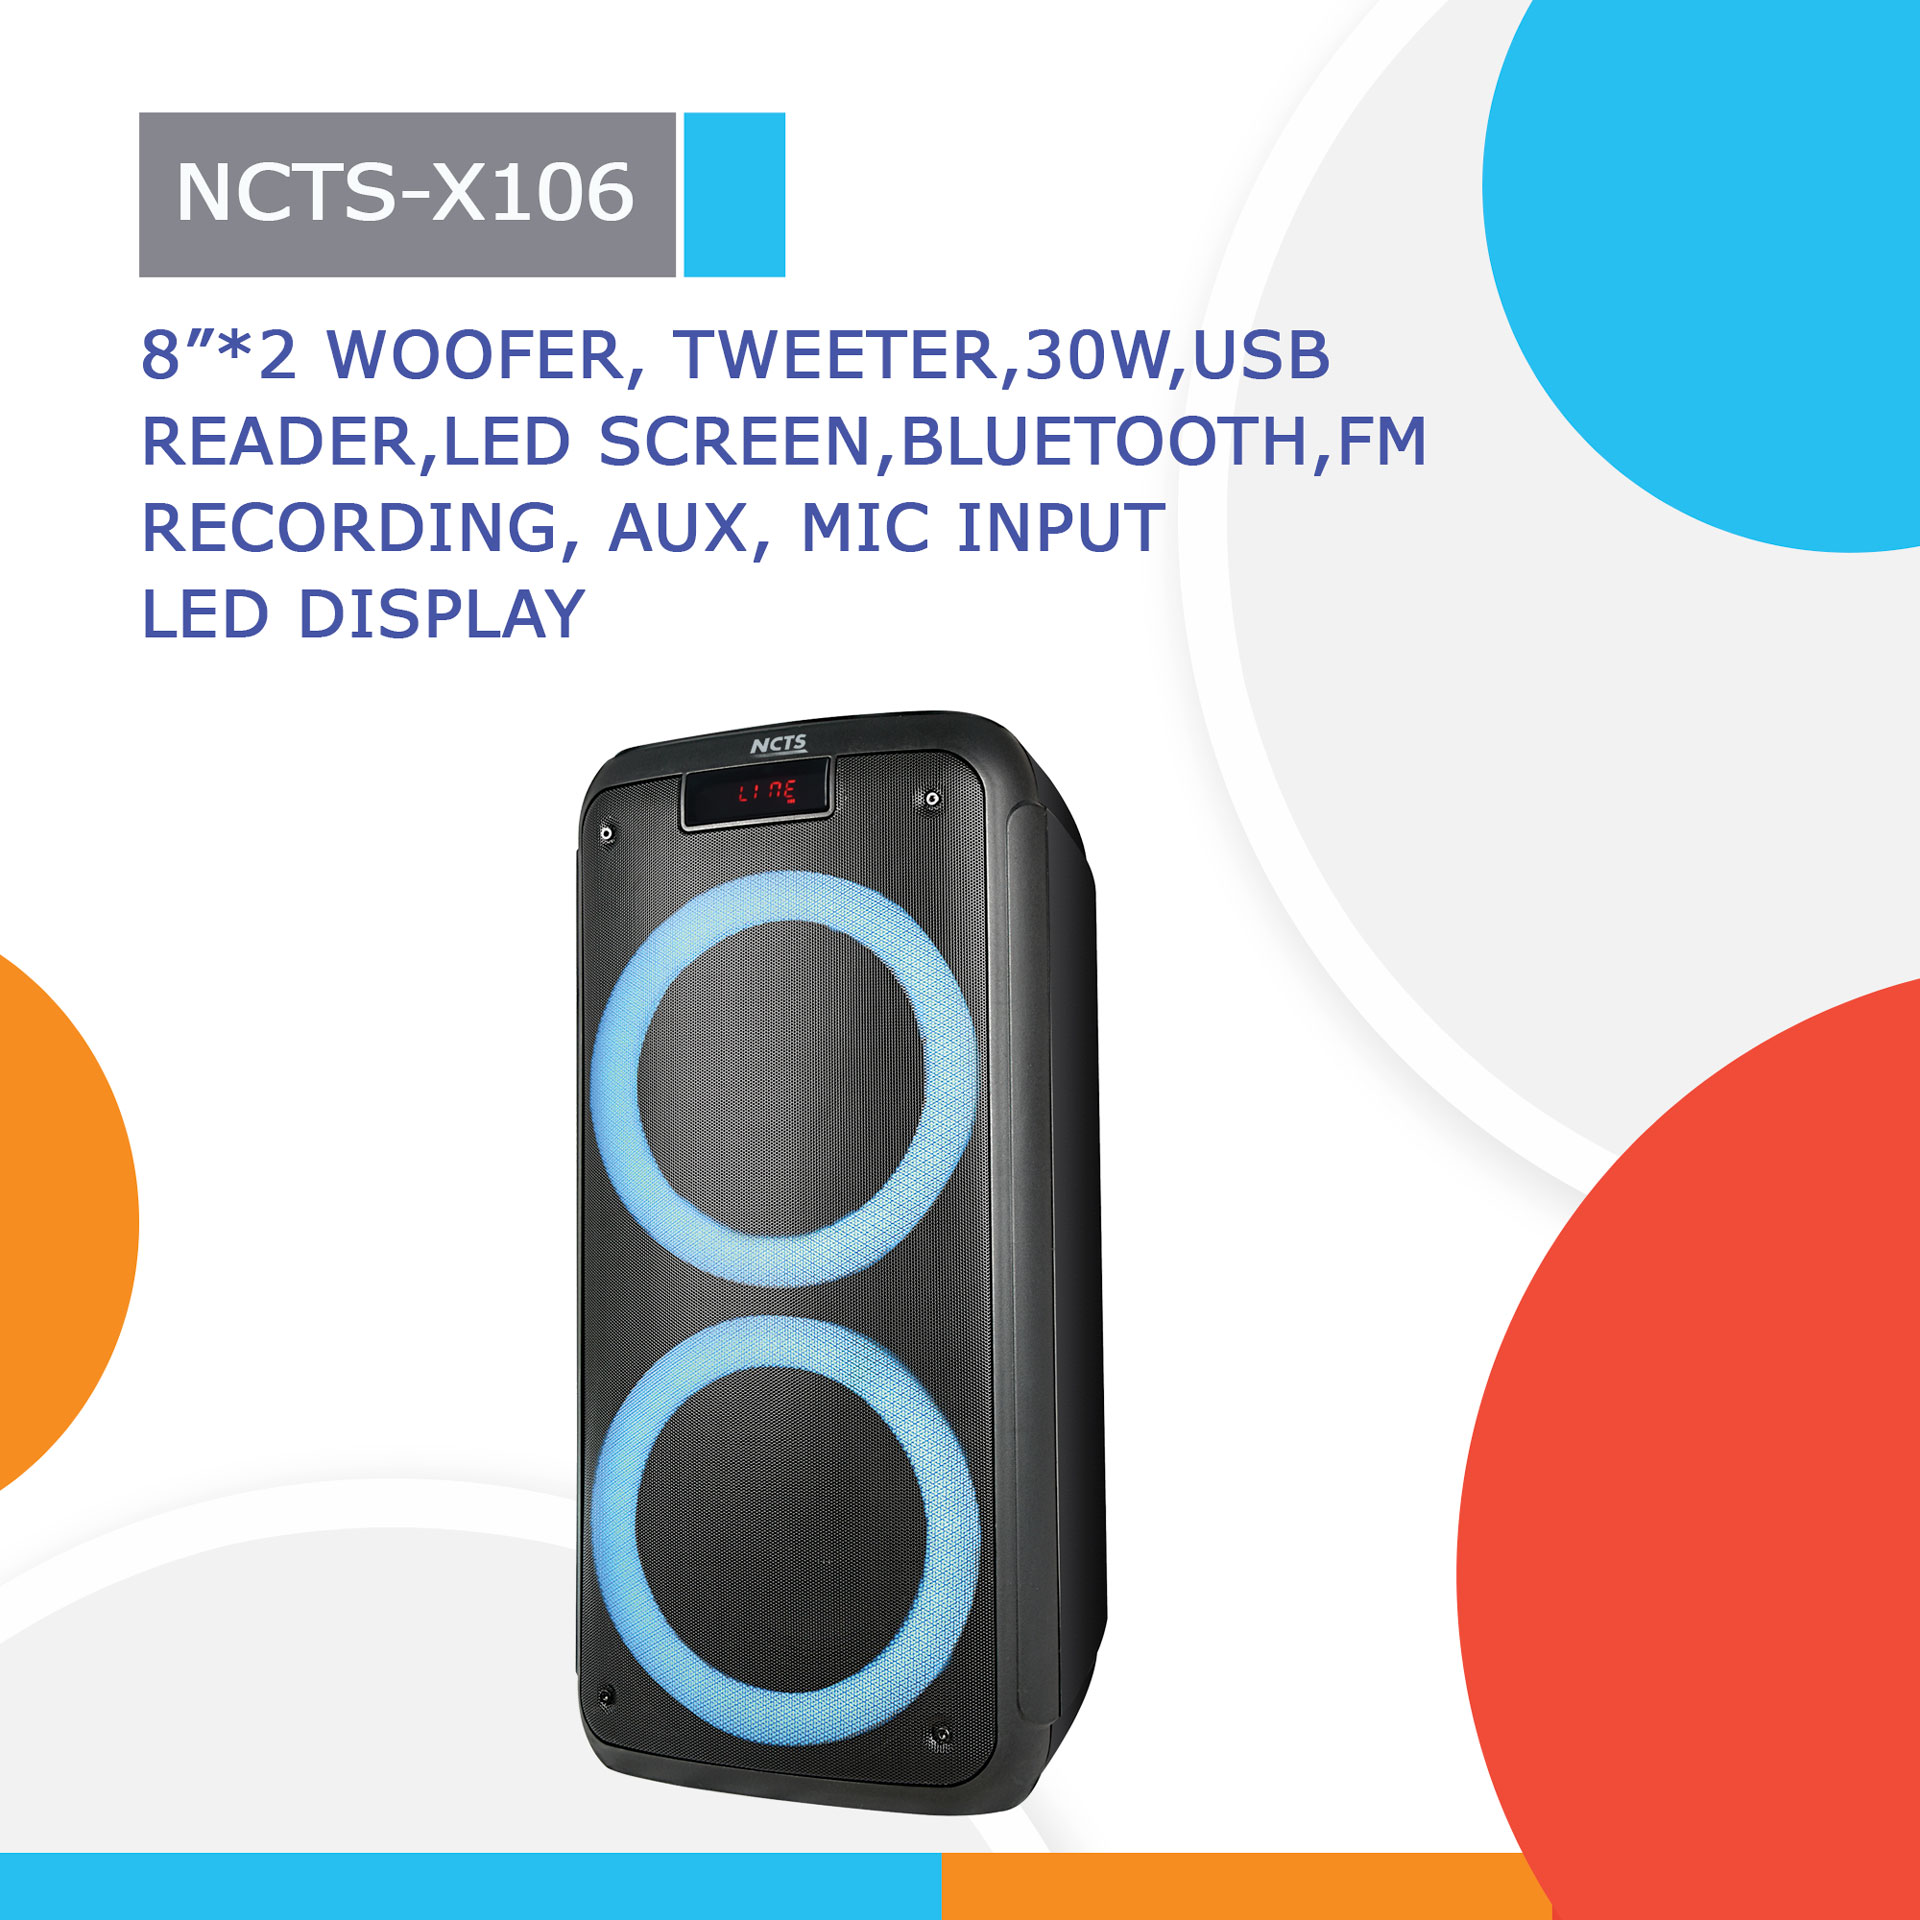 NCTS-X106